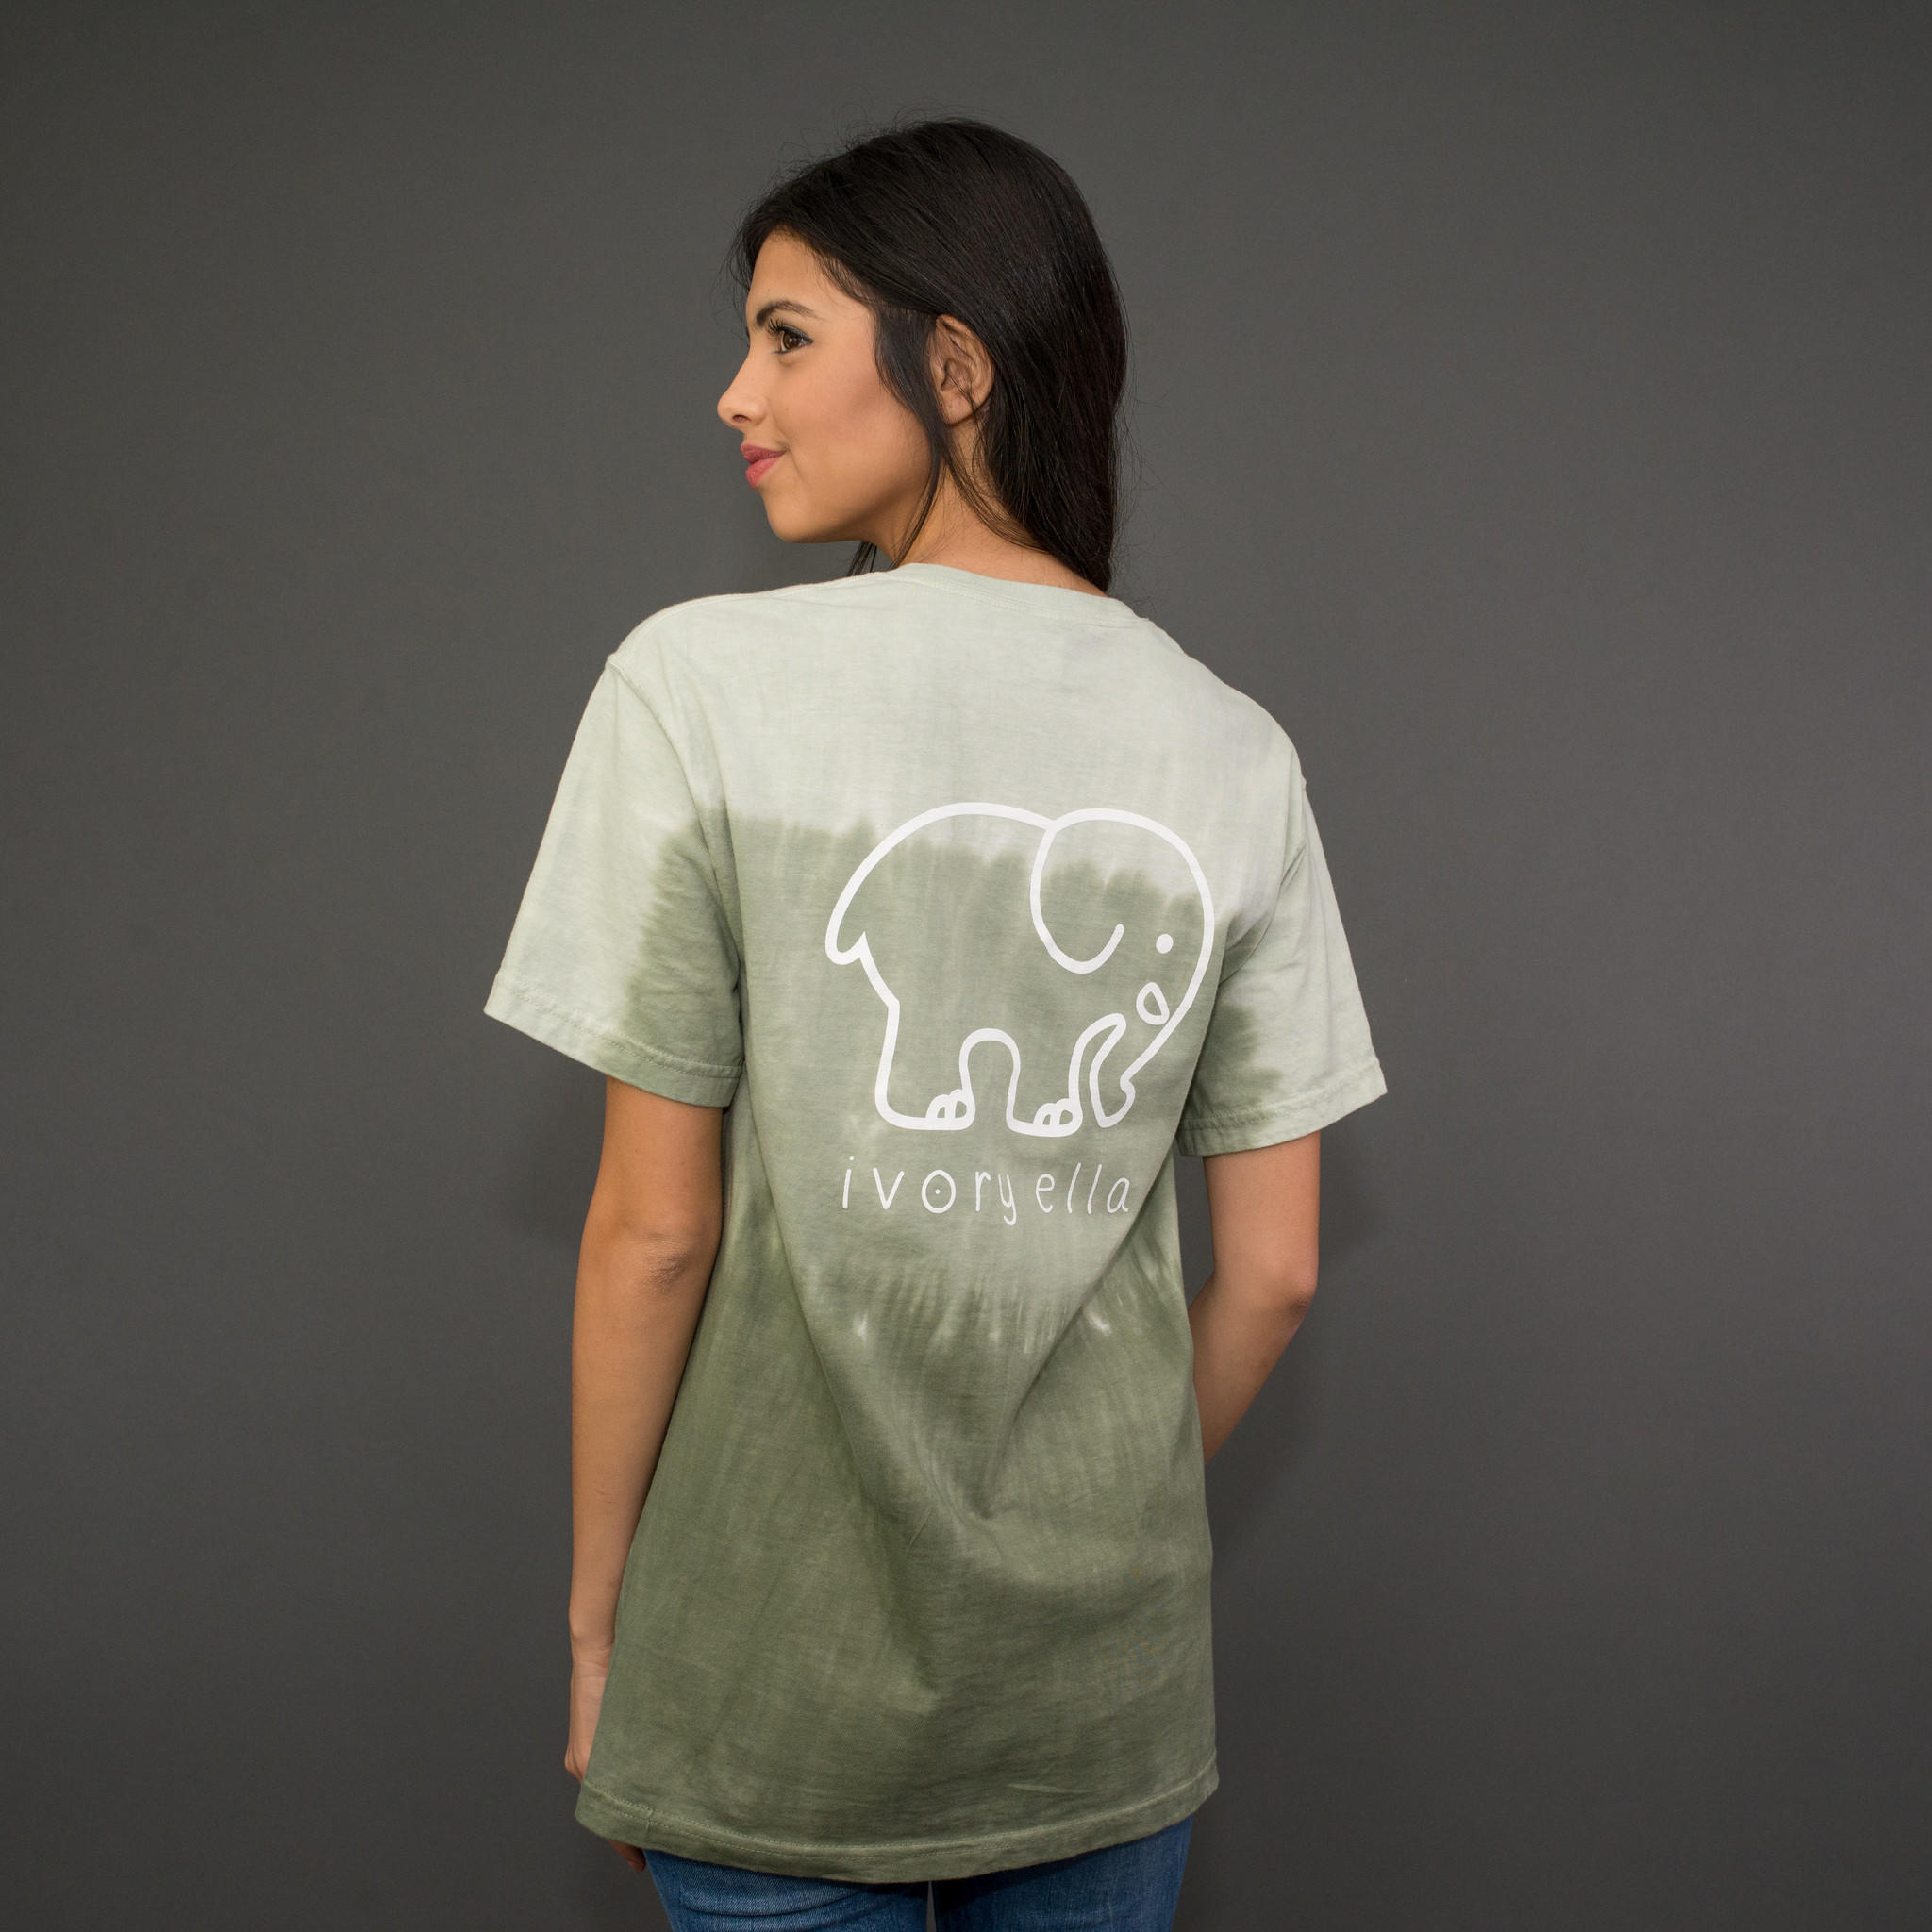 0ddd6ee7fb93 Classic Fit Olive Ombre Tee from Ivory Ella